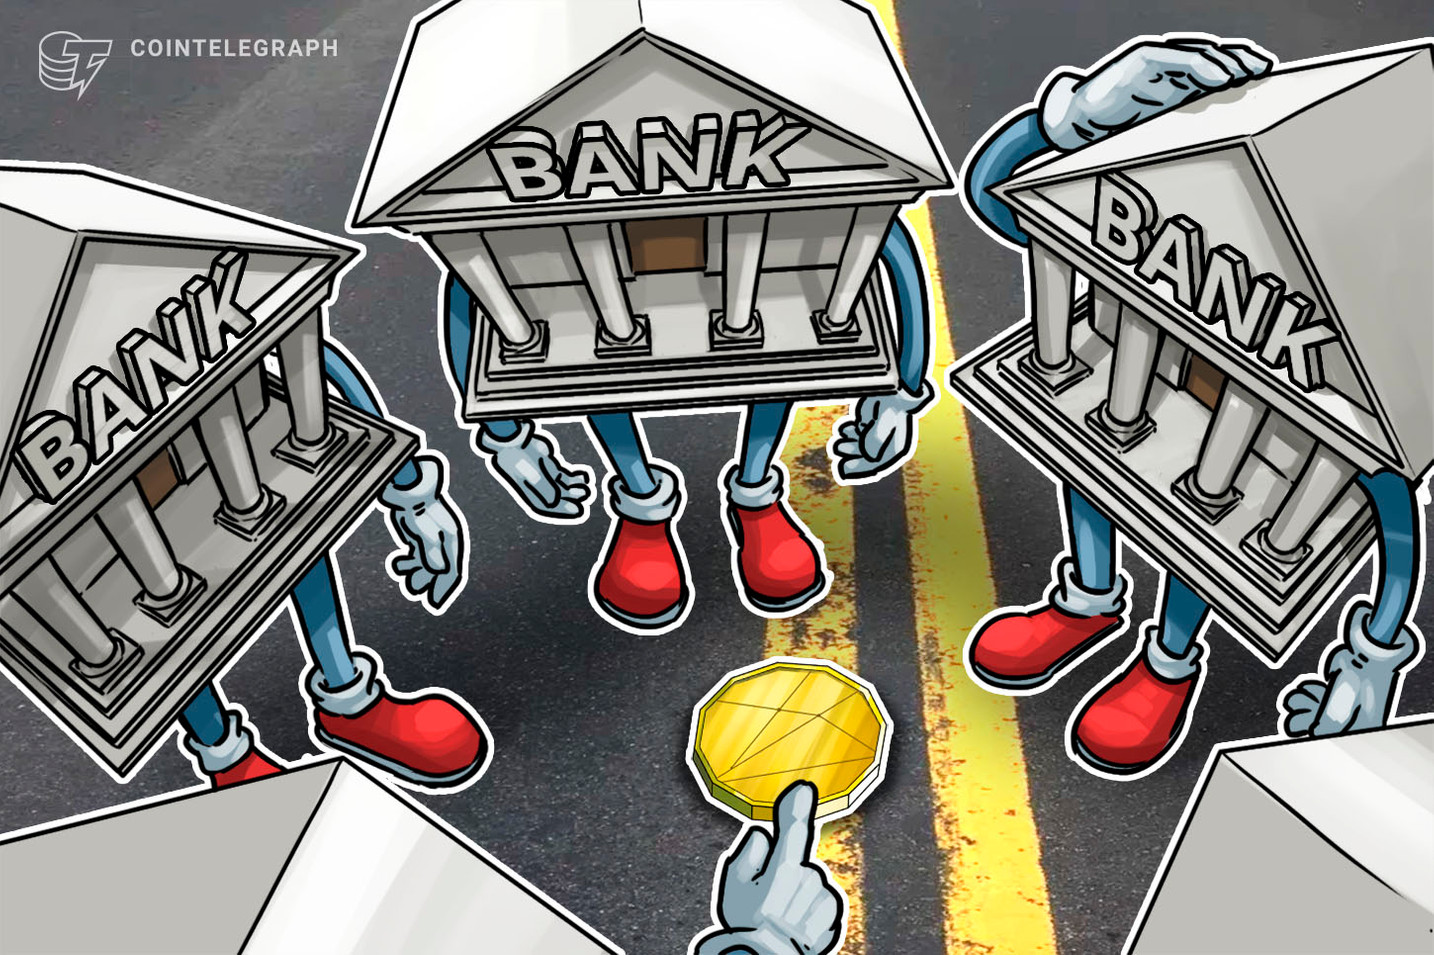 Islamic Financial Institution Partners With Startup to Develop Interbank Blockchain Tools